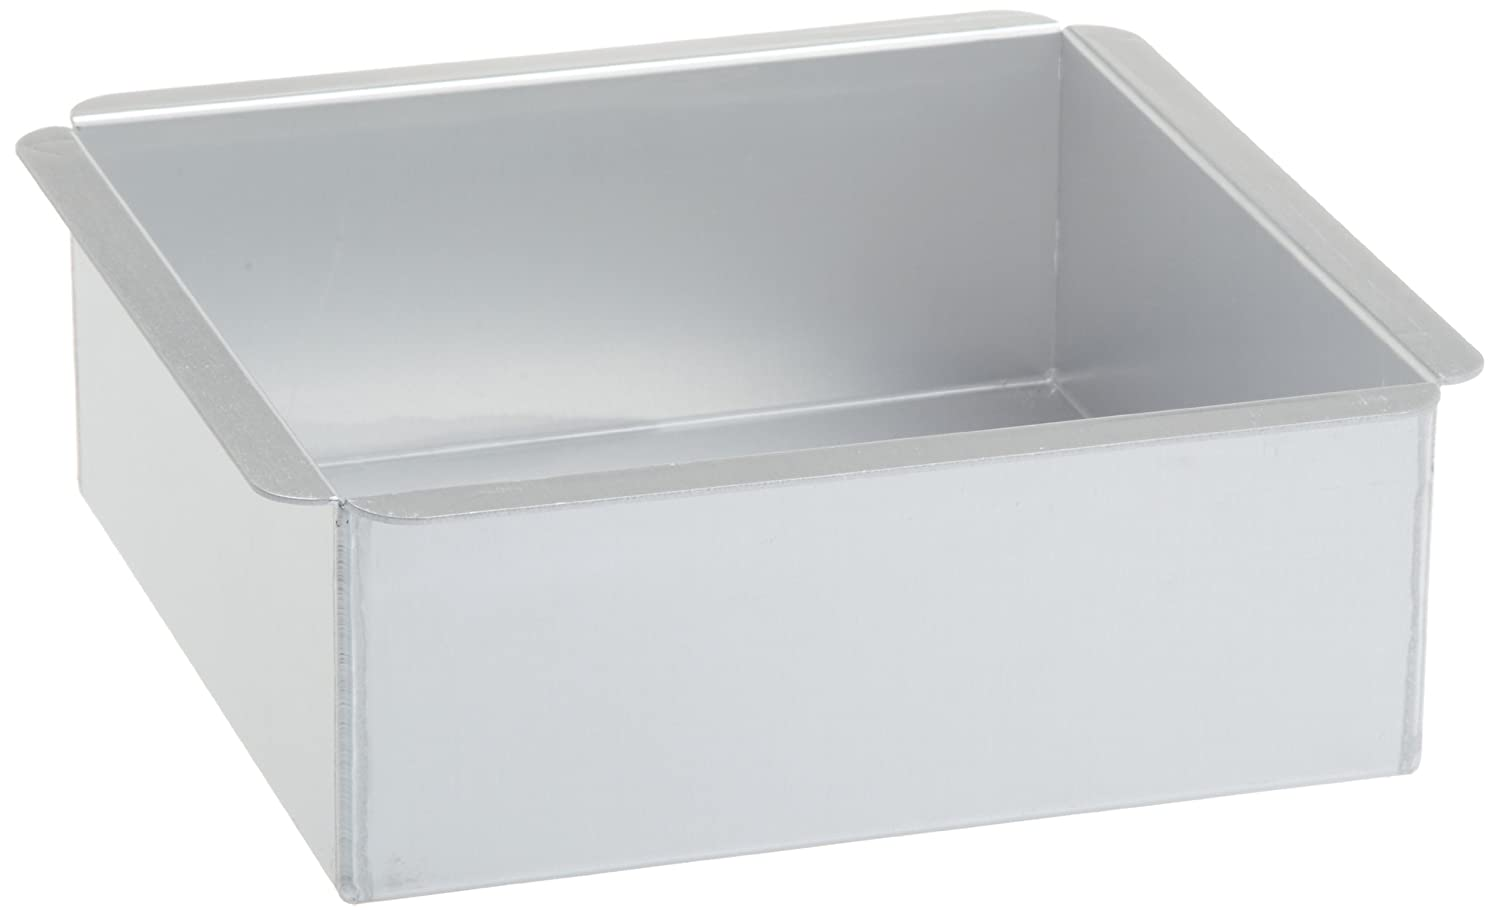 Ateco 12066 6-Inch by 6-Inch by 3-Inch Professional Square Baking Pan